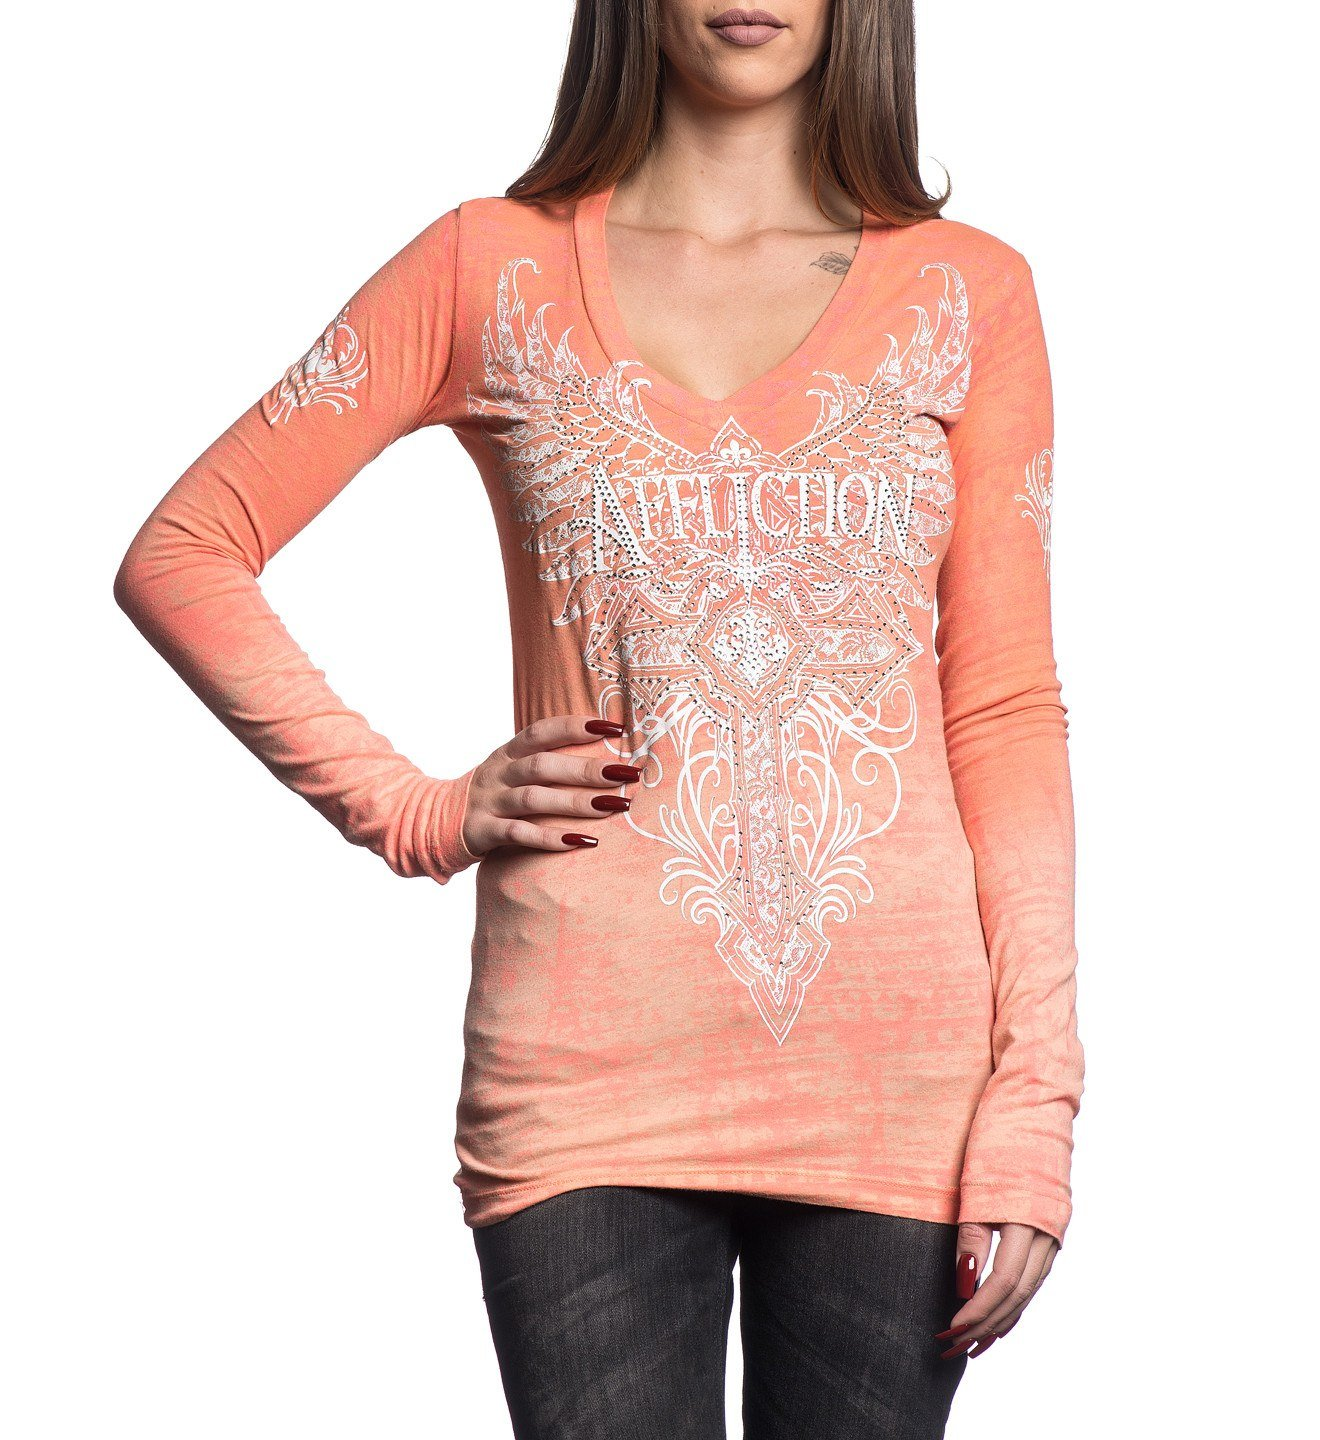 Lorielle - Womens Long Sleeve Tees - Affliction Clothing